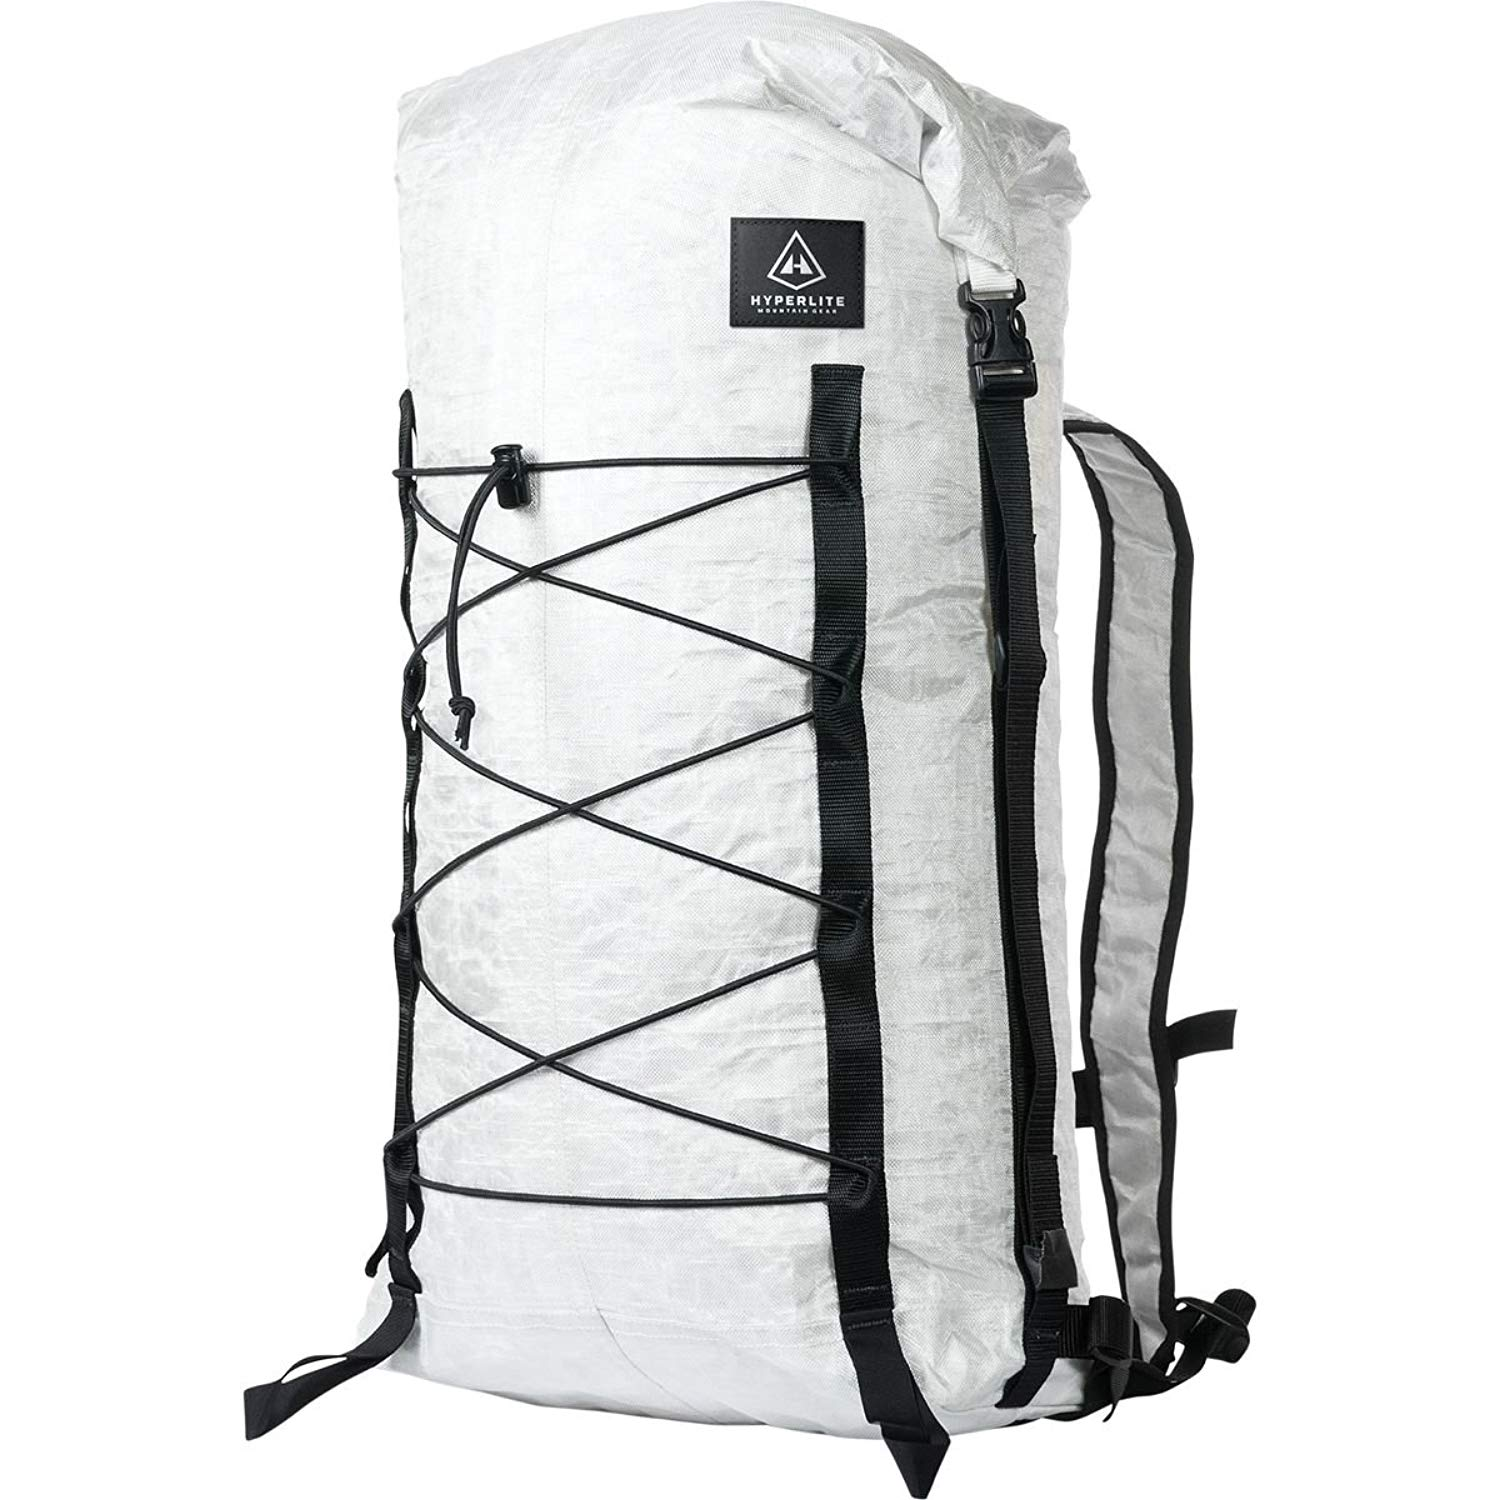 HYPERLITE MOUNTAIN GEAR(ハイパーライトマウンテンギア)/Dyneema Summit 30L Backpack